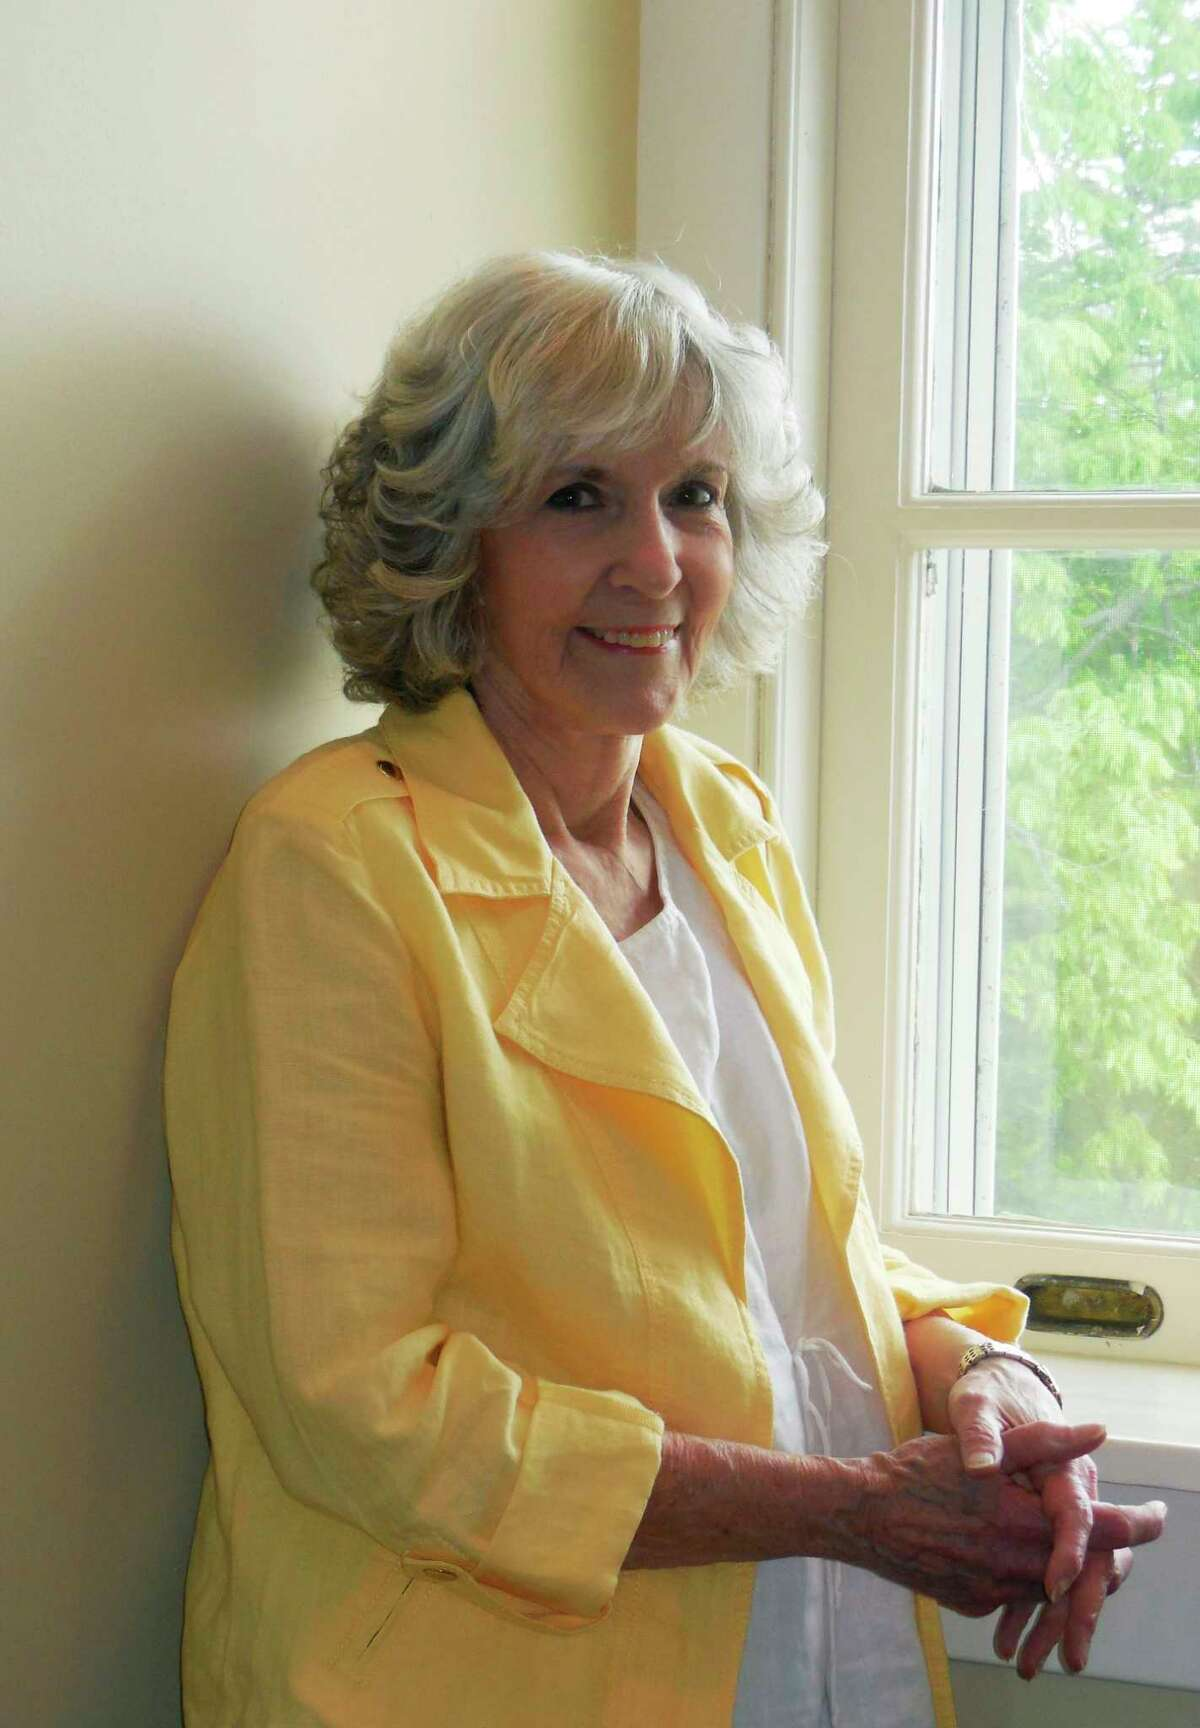 """Sue Grafton, 1940-2017: Sue Grafton, author of the best-selling """"alphabet series"""" of mystery novels, died in Santa Barbara, Calif. on Thursday, Dec. 28, 2017. She was 77."""